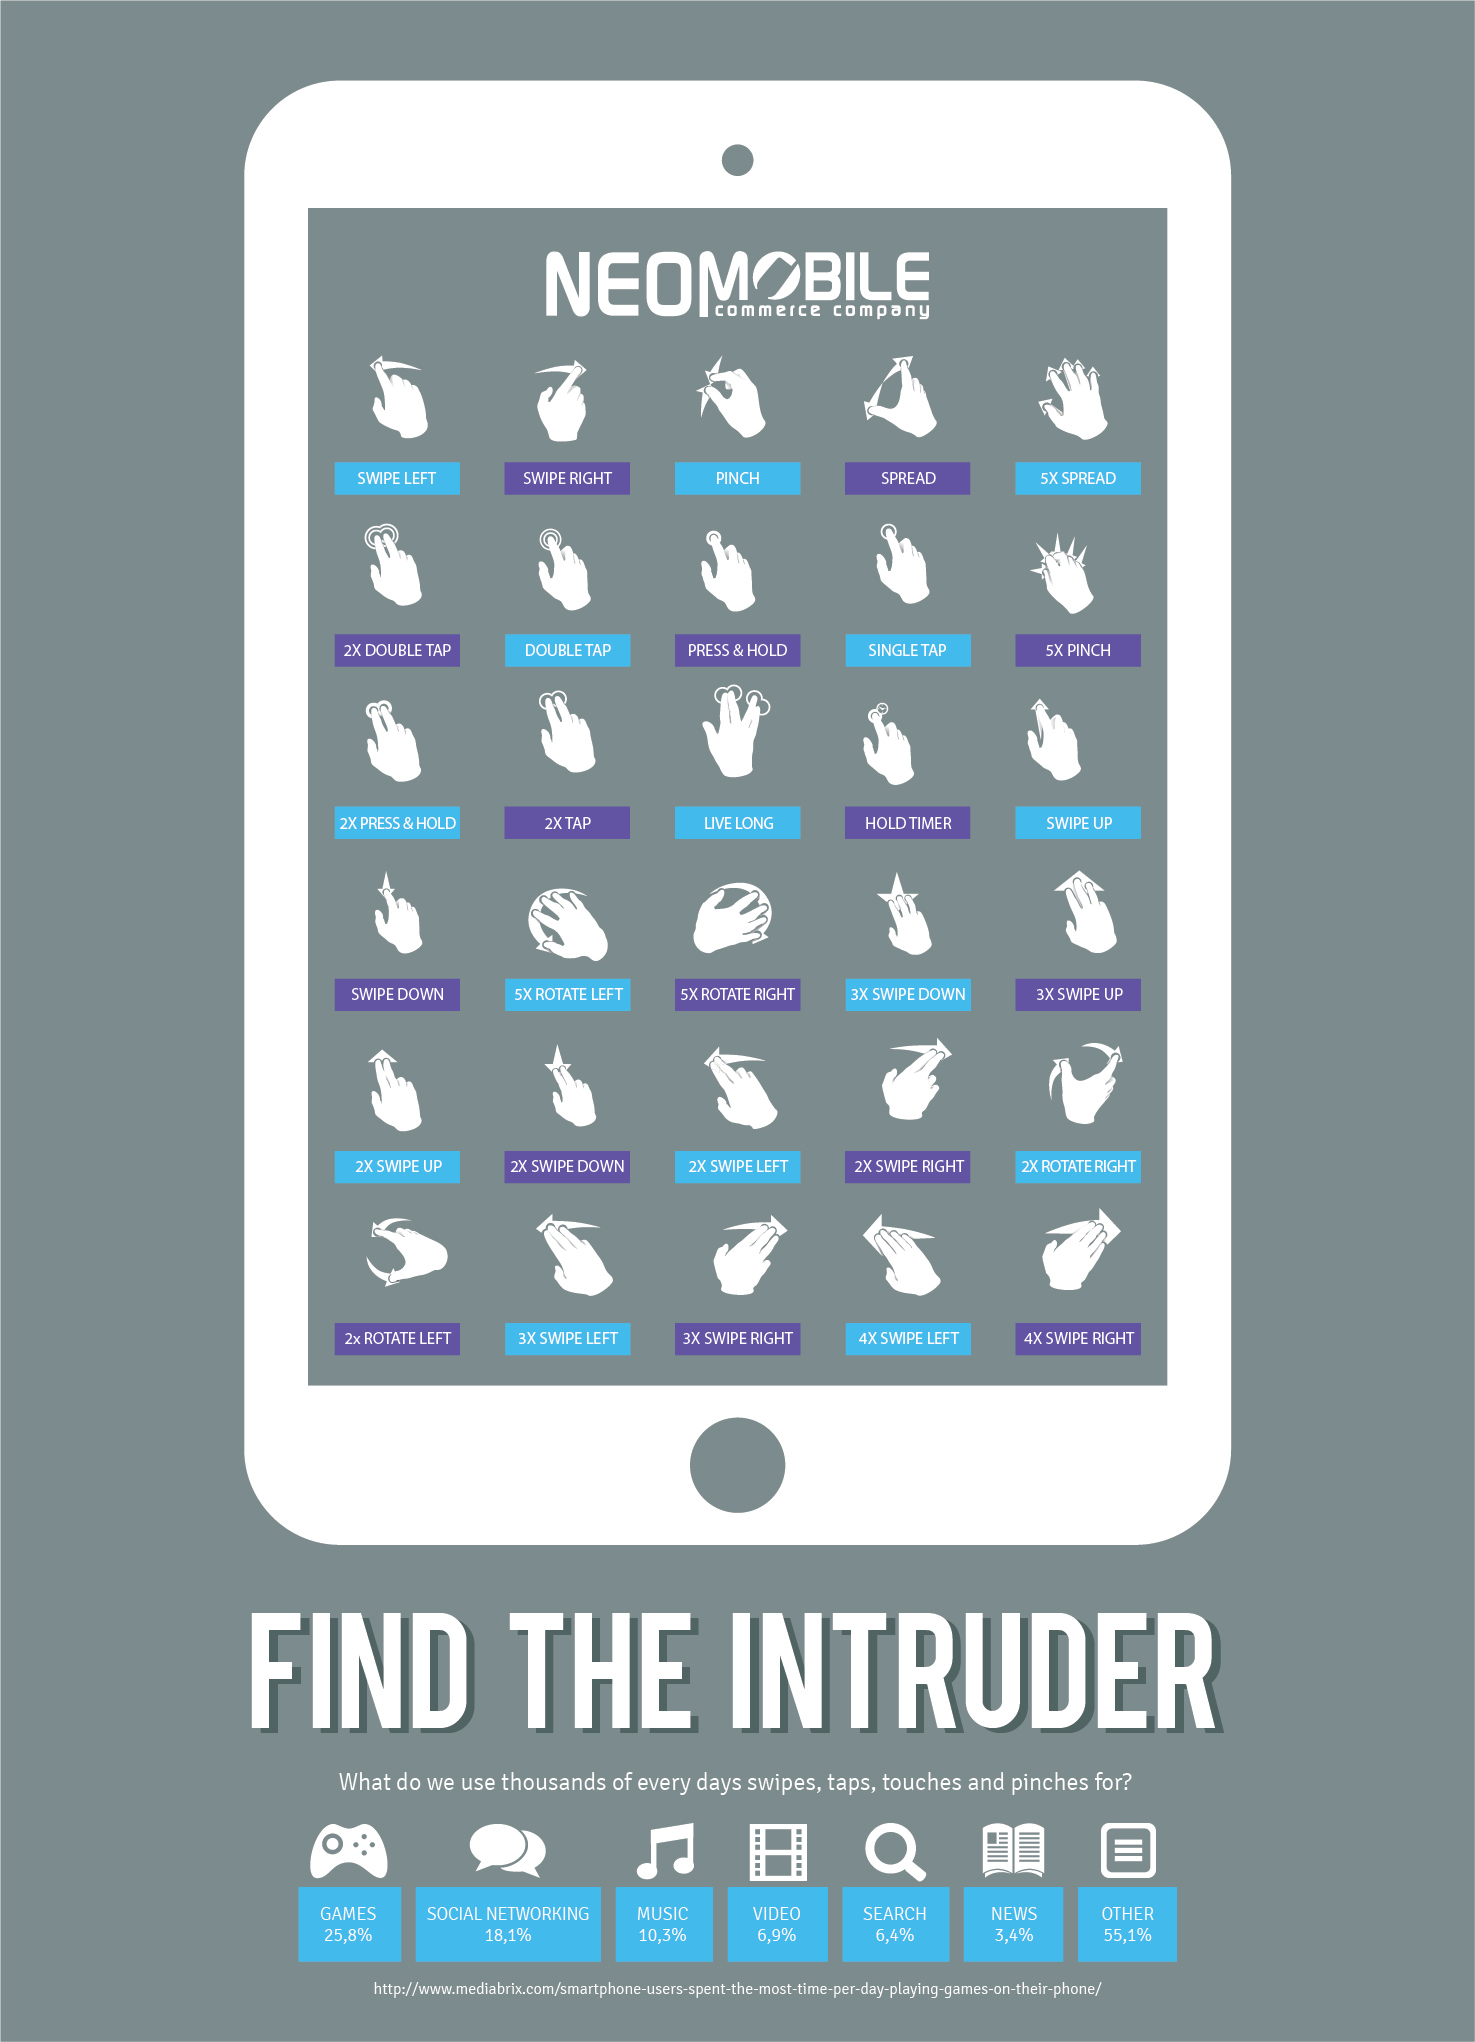 Are you a mobile expert? Test your expertise and try to find the intruder!  Infographic by Neomobile